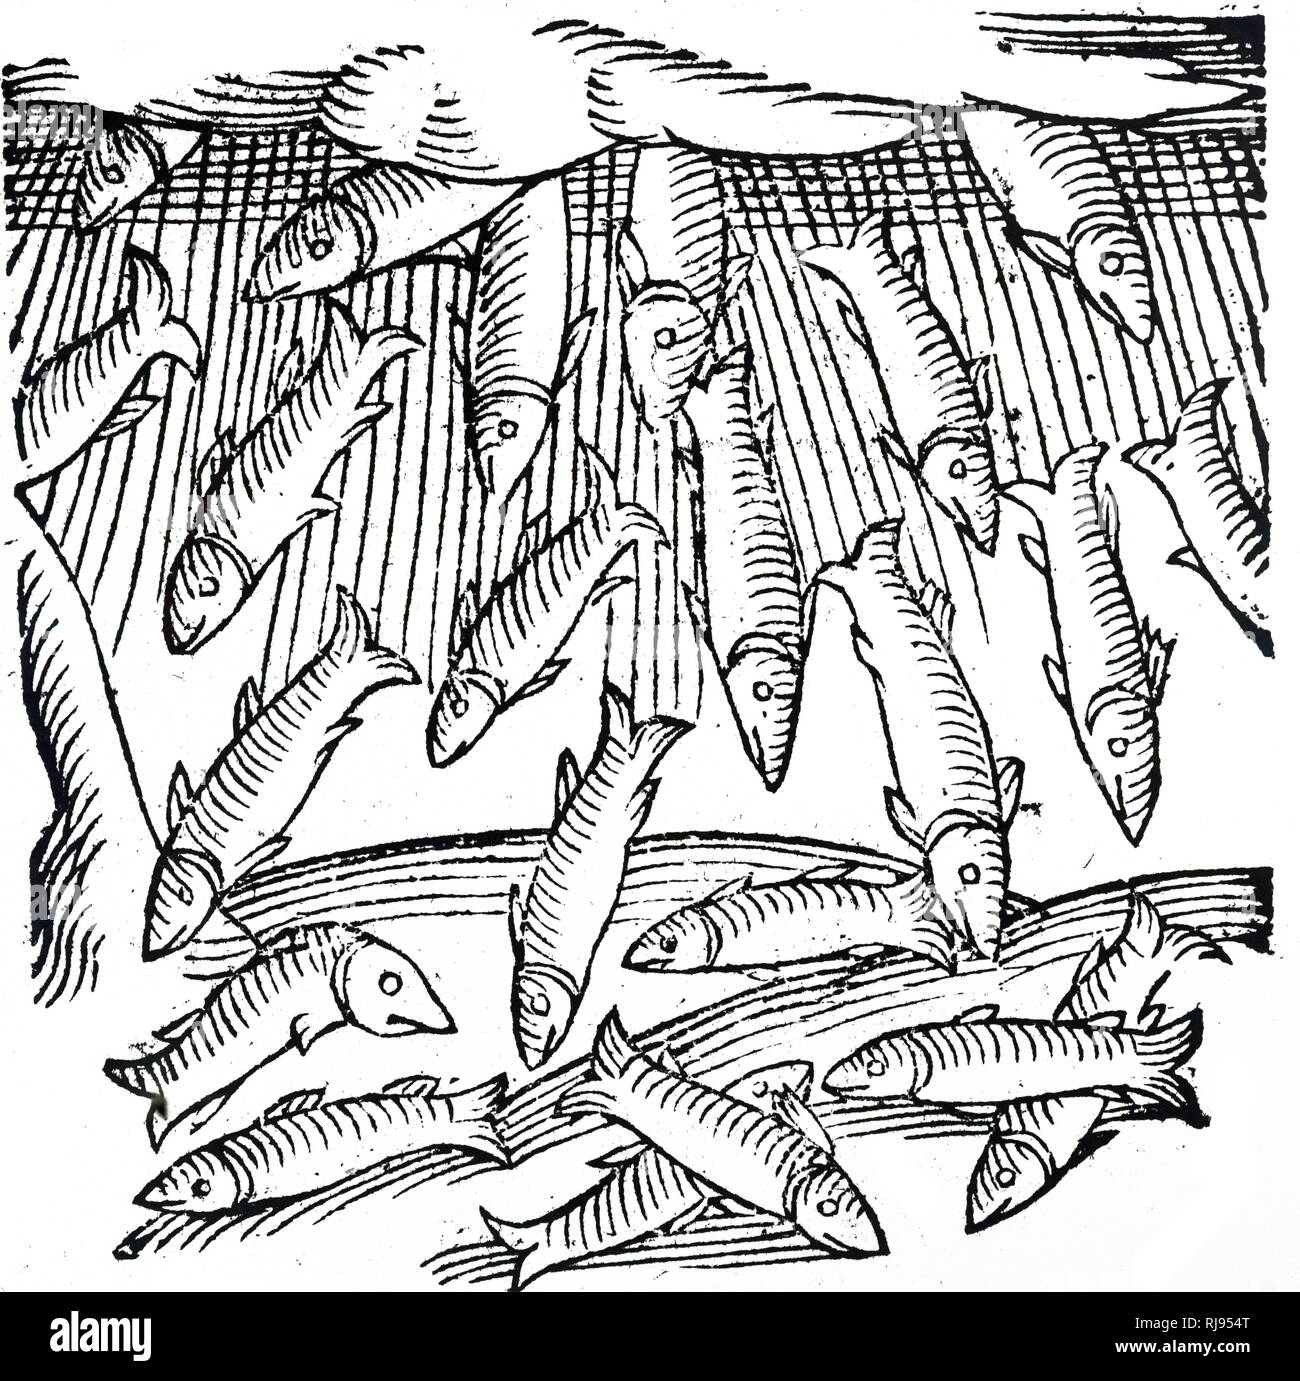 A woodcut engraving depicting the rain of fishes which occurred in Saxony in the year 989. Dated 16th century - Stock Image